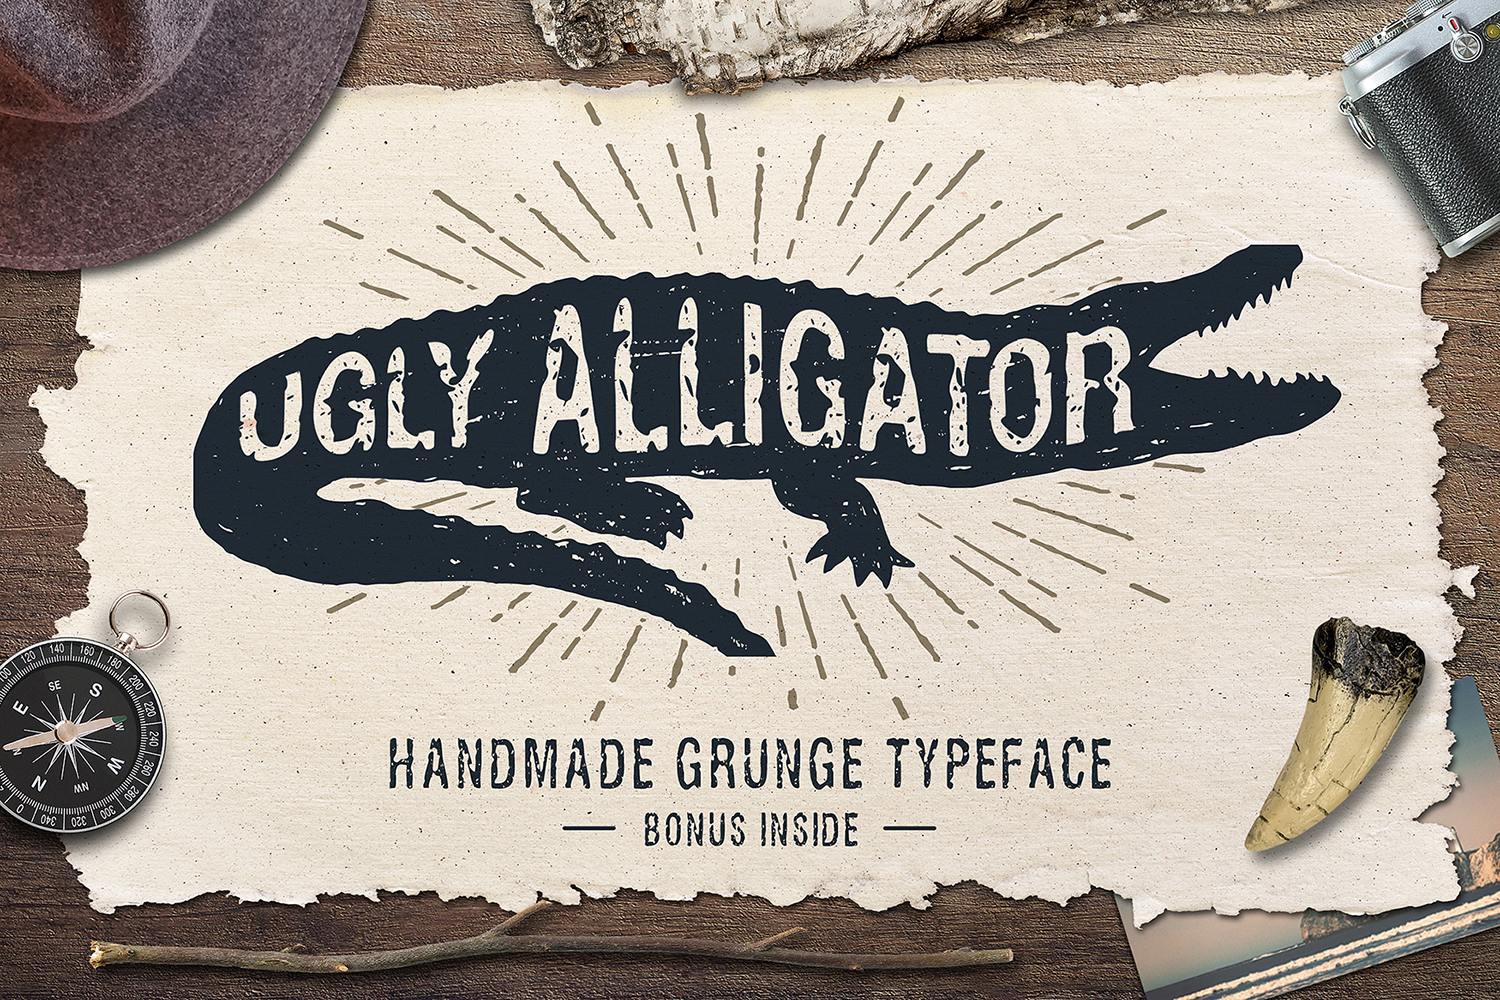 Ugly Alligator - Grunge Typeface in Fonts on Yellow Images Creative